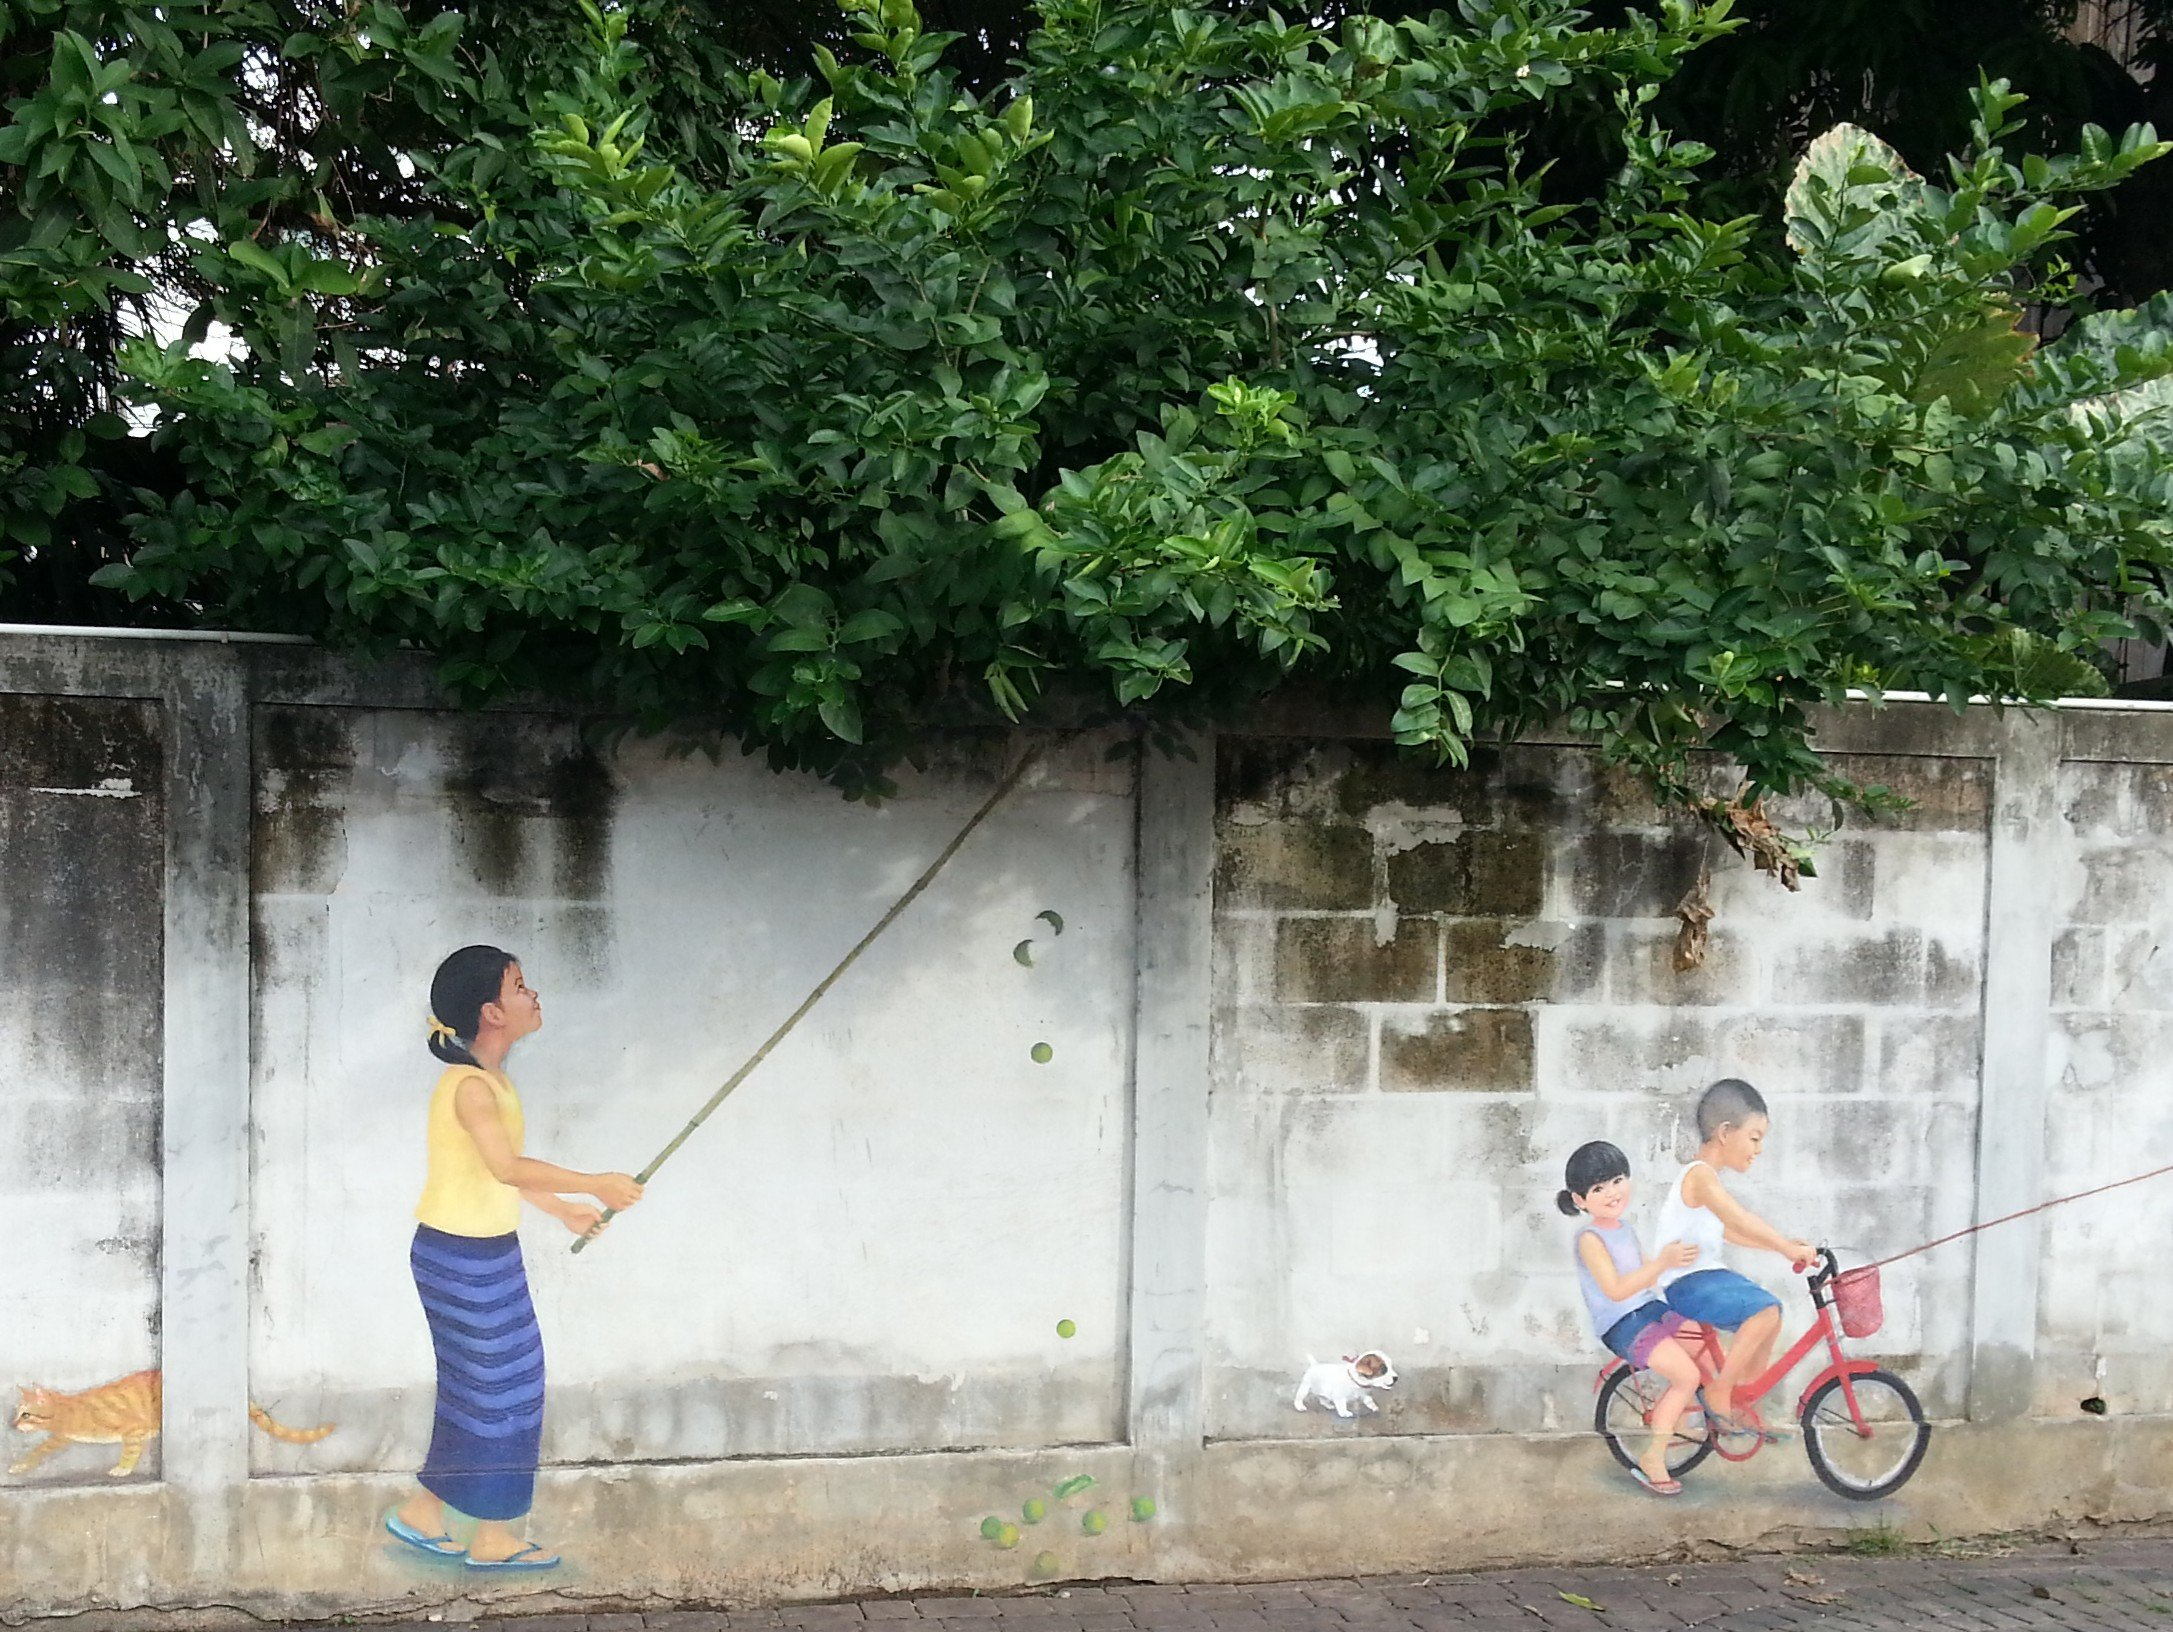 Collecting mangoes mural in Lampang